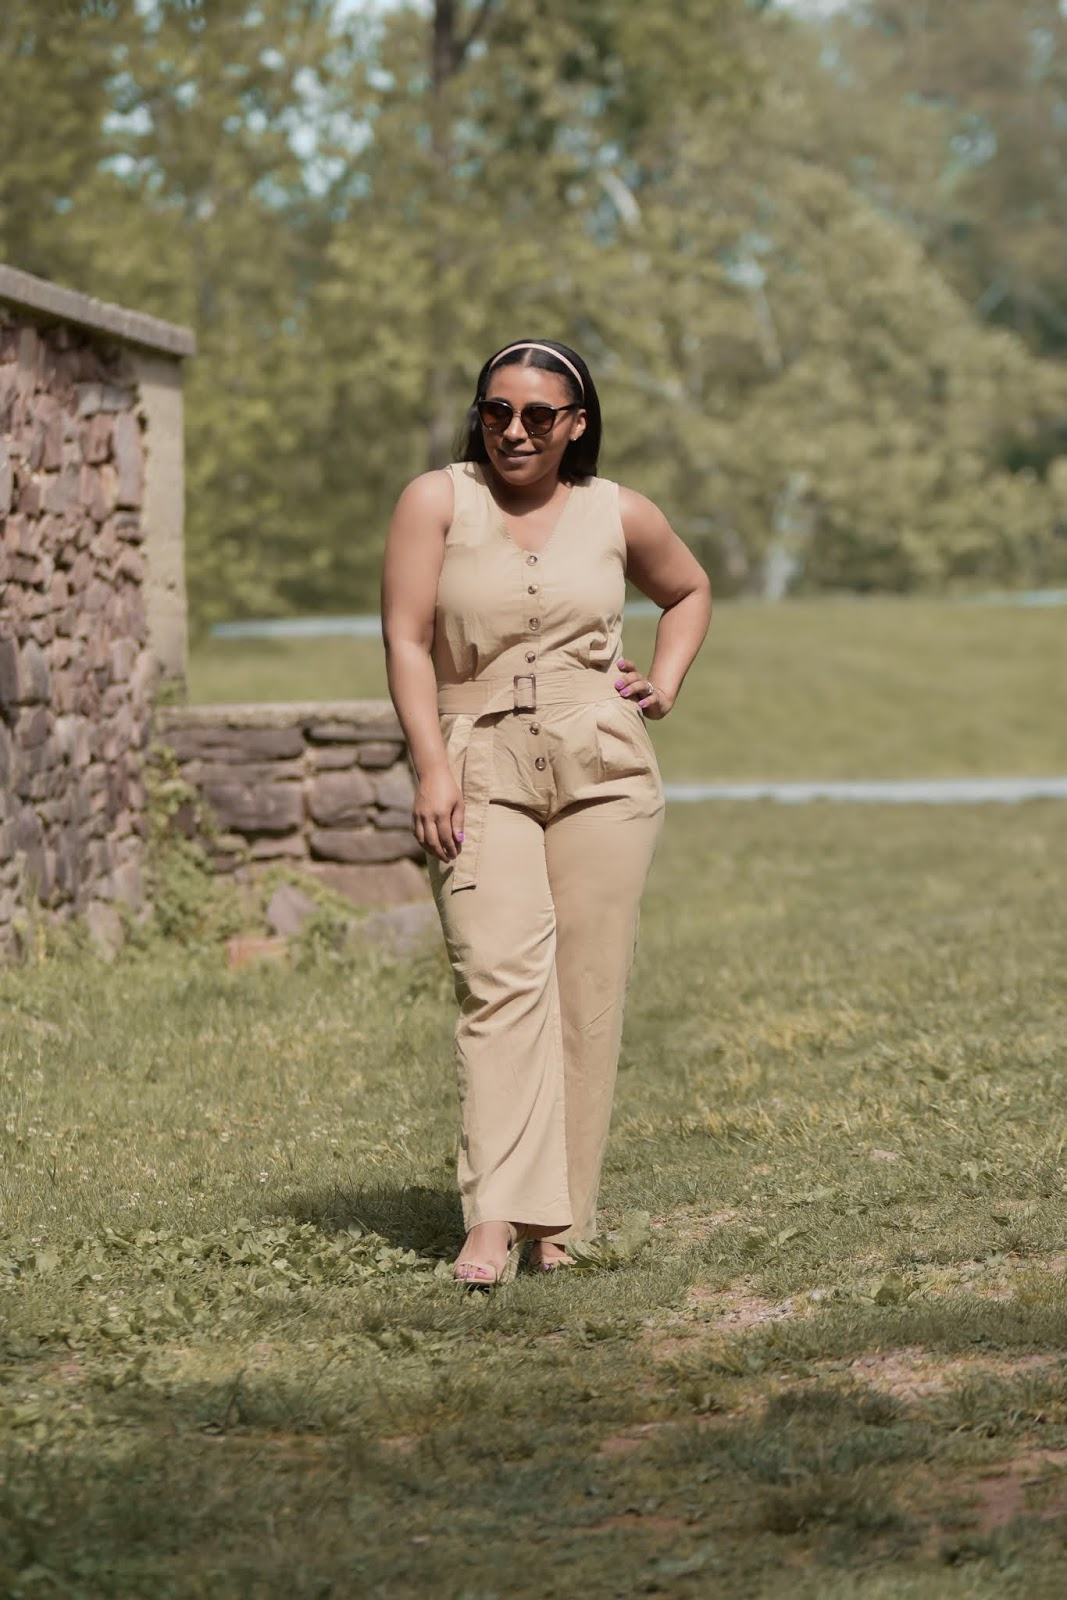 Shein, shein reviews, hwo to style a jumpsuit, summer outfits, summer outfit ideas with jumpsuits, pattys kloset